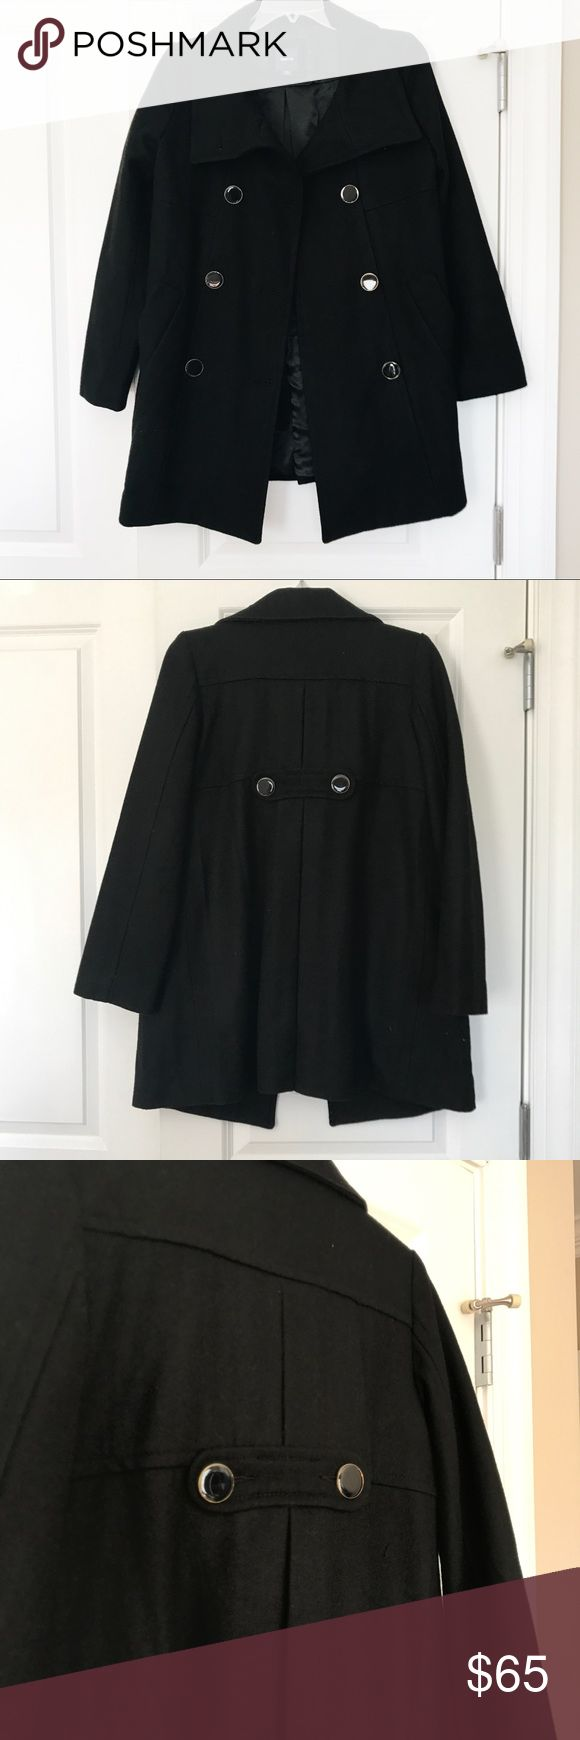 GapKids black pea coat This stunning GapKids pea coat is perfect for cold temps! It's in great condition and perfect to throw on over dresses and nicer outfits! GAP Jackets & Coats Pea Coats